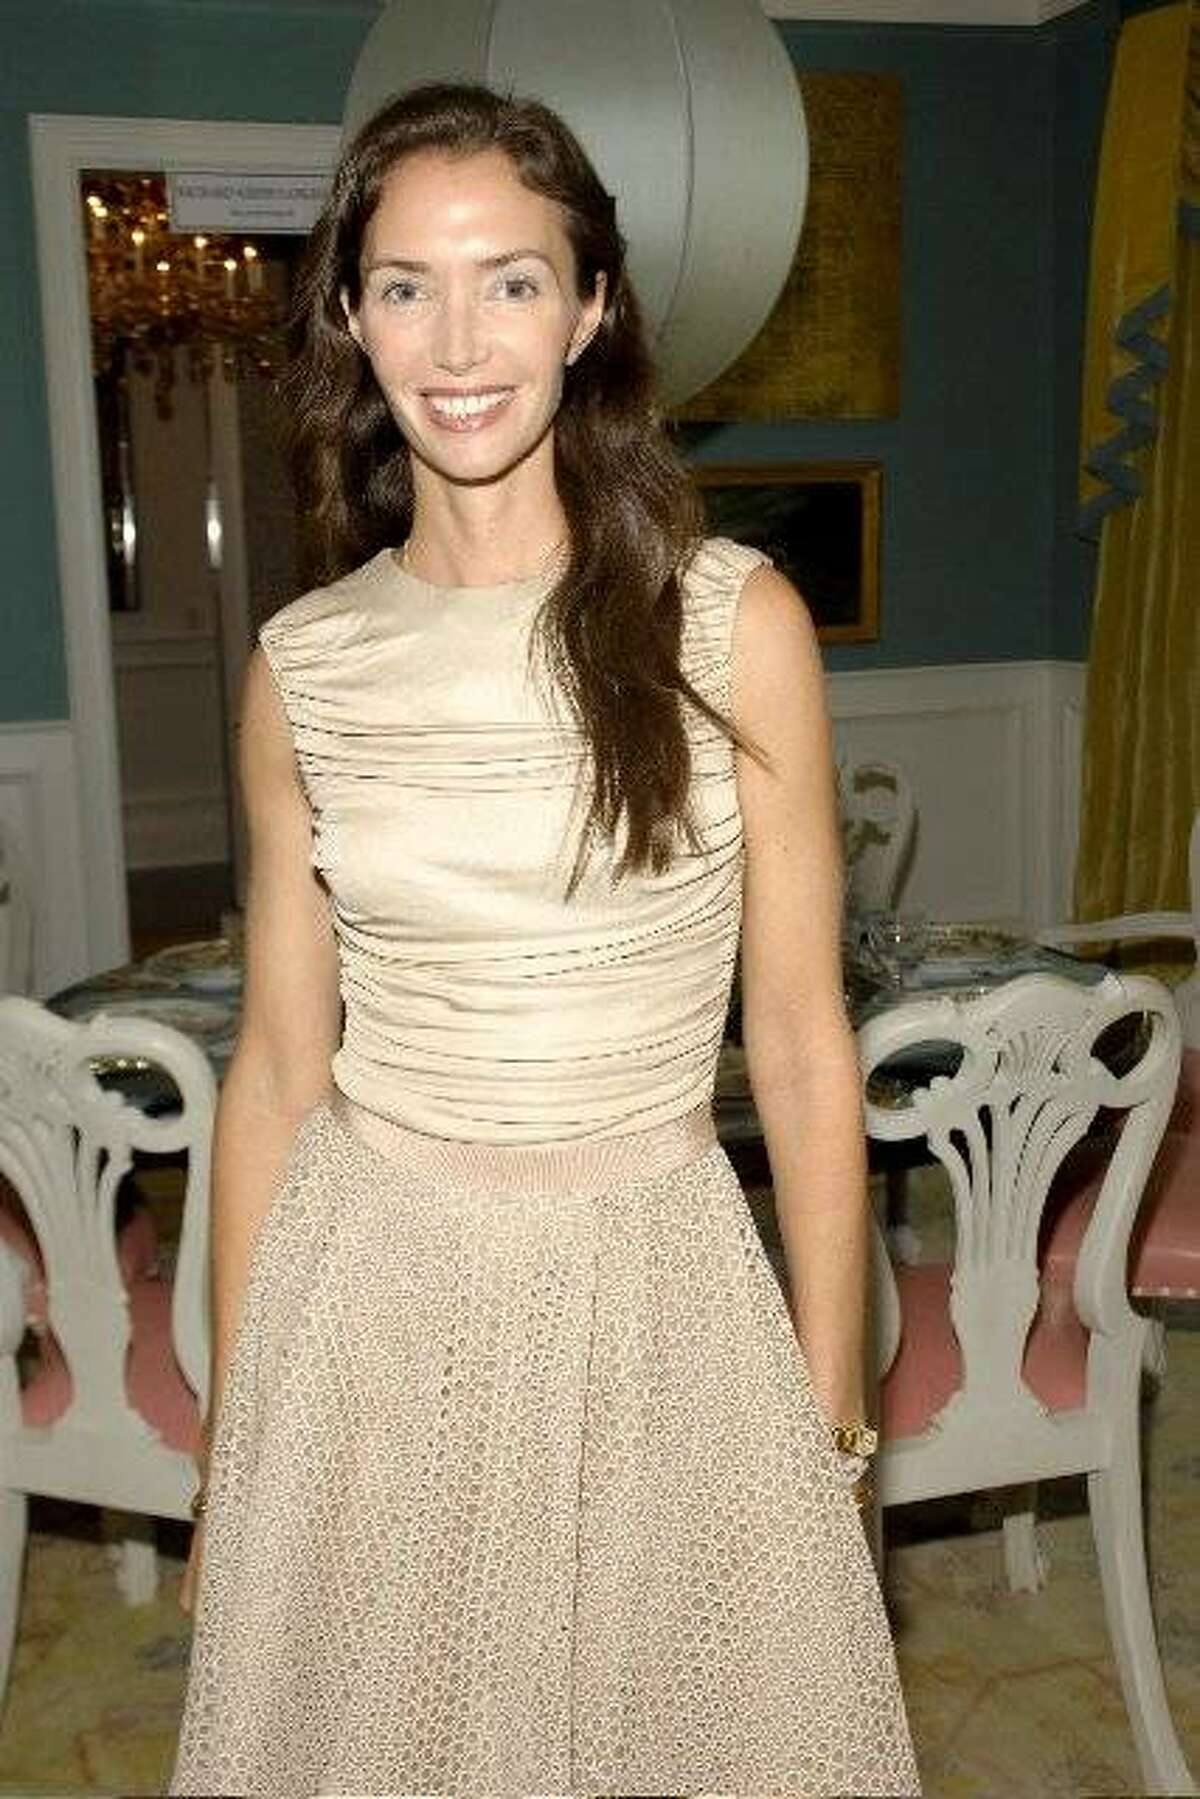 Olivia Chantecaille at the OKL Hamptons Launch. July 2010. By Patrick McMullan.